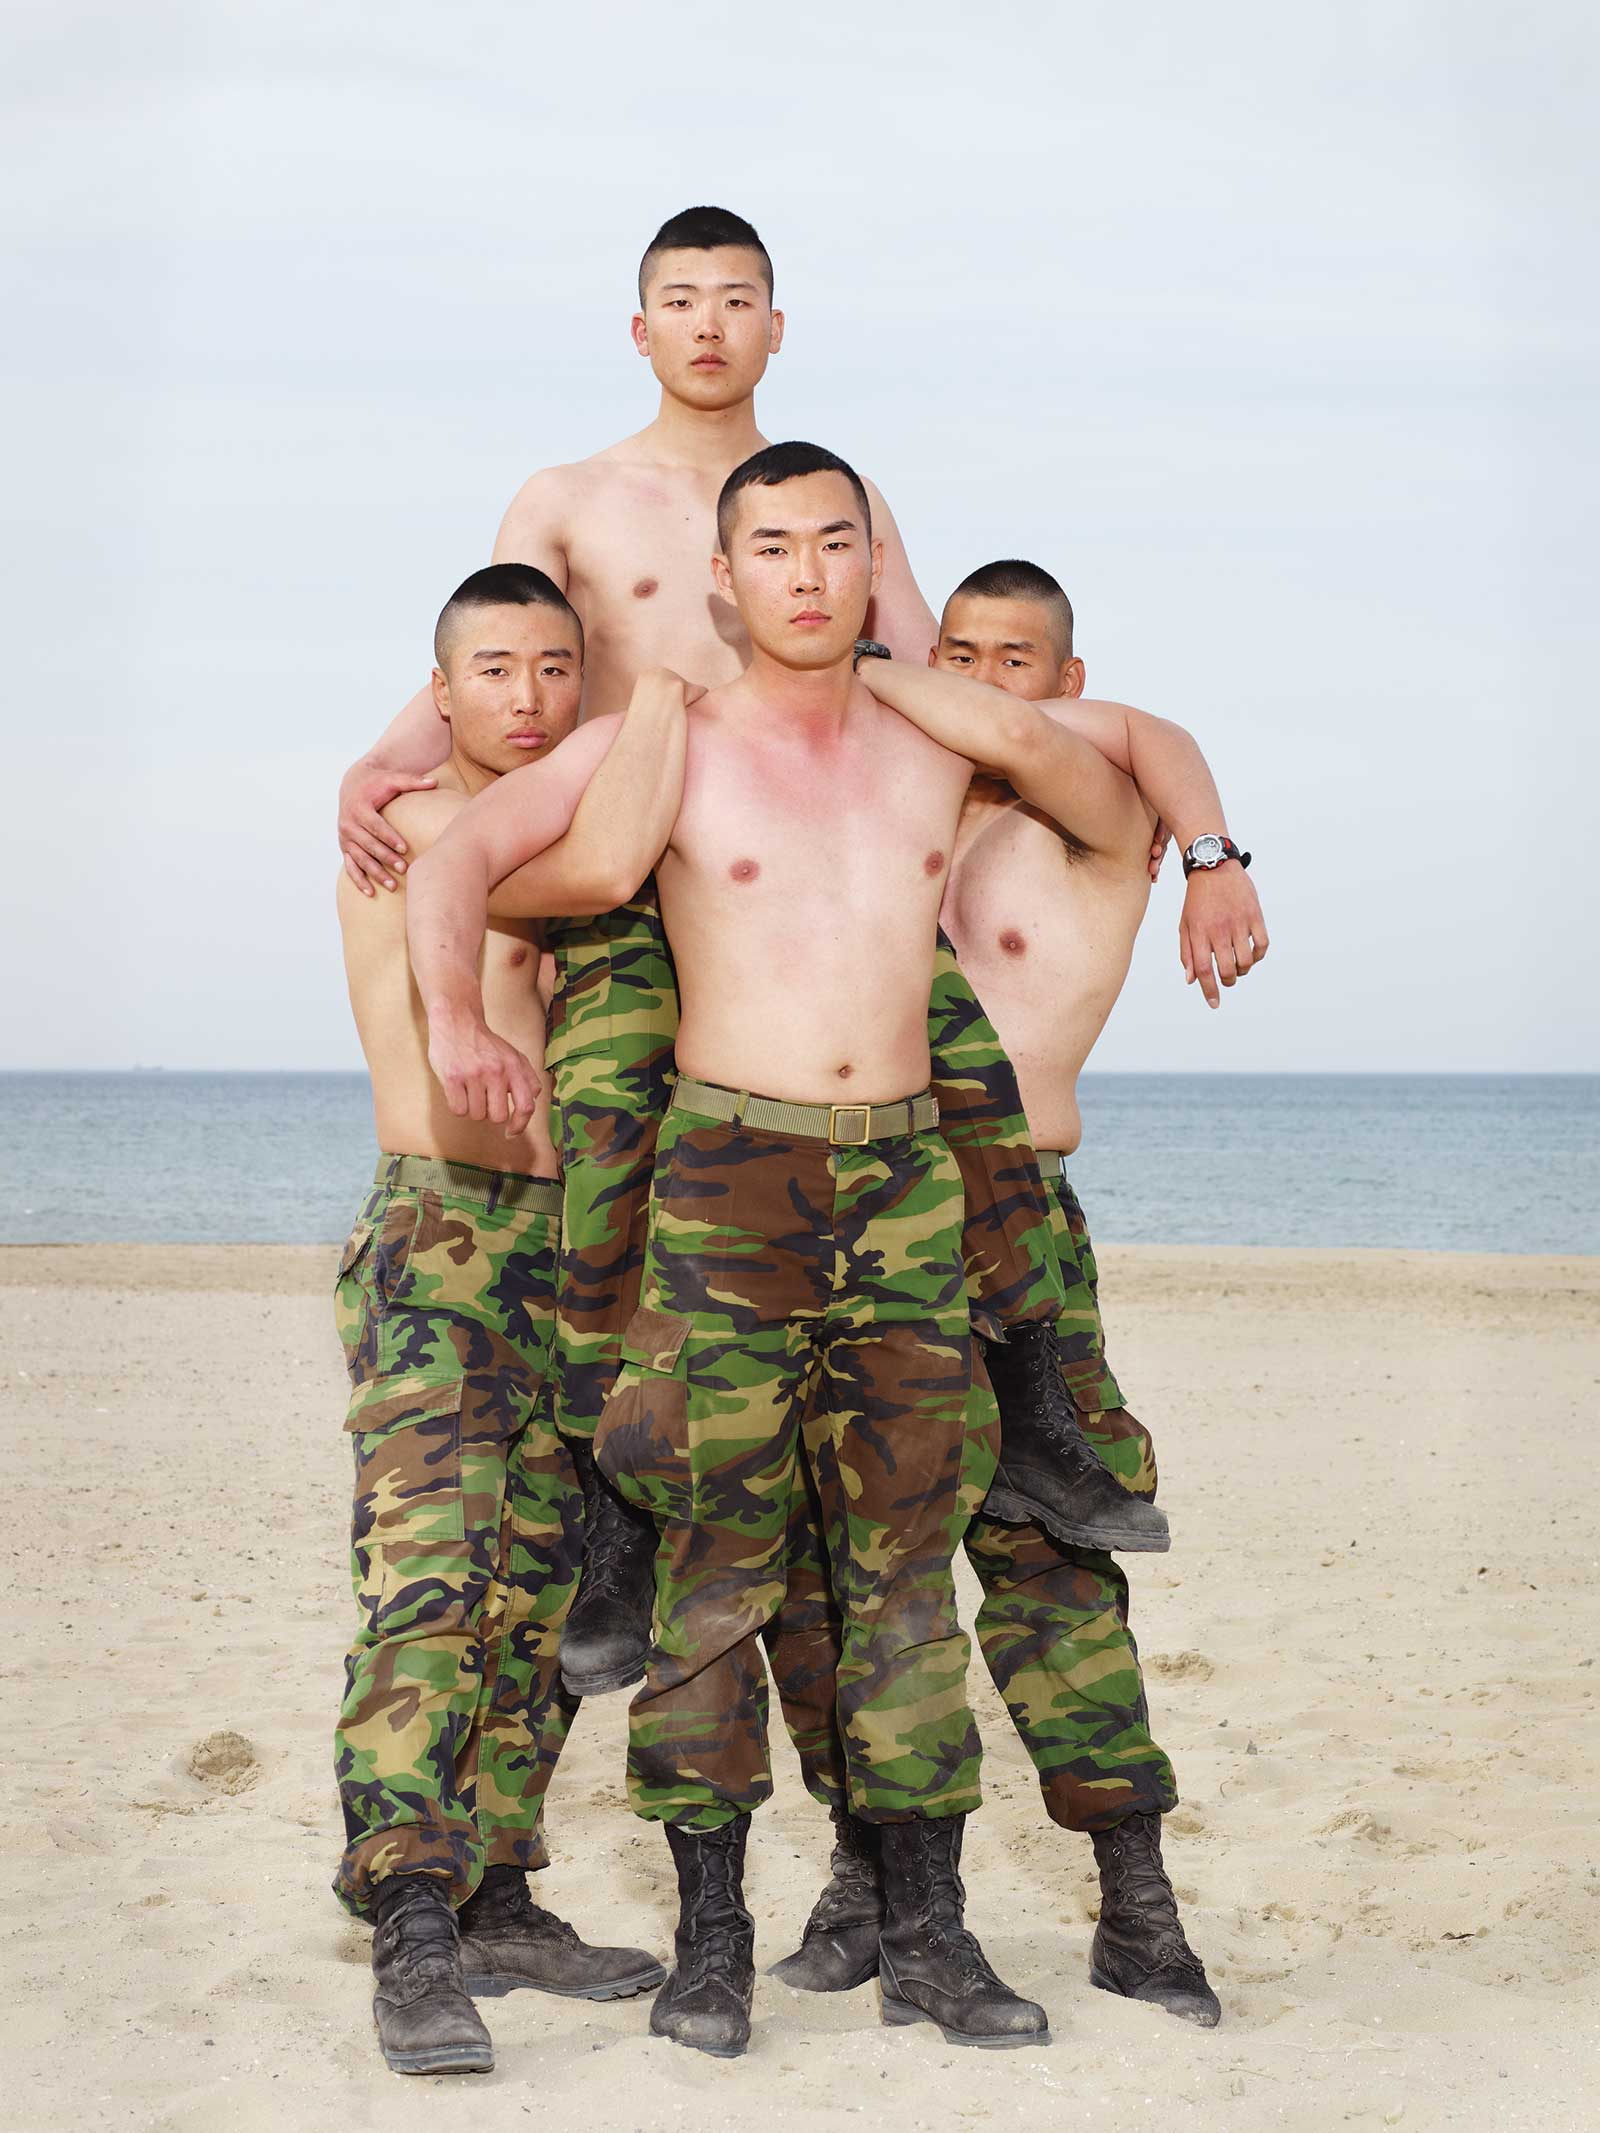 Heinkuhn OH,  Four soldier before a mock cavalry battle, May 2010 , 2010. 132 x 105cm, C Print. Image courtesy of the artist